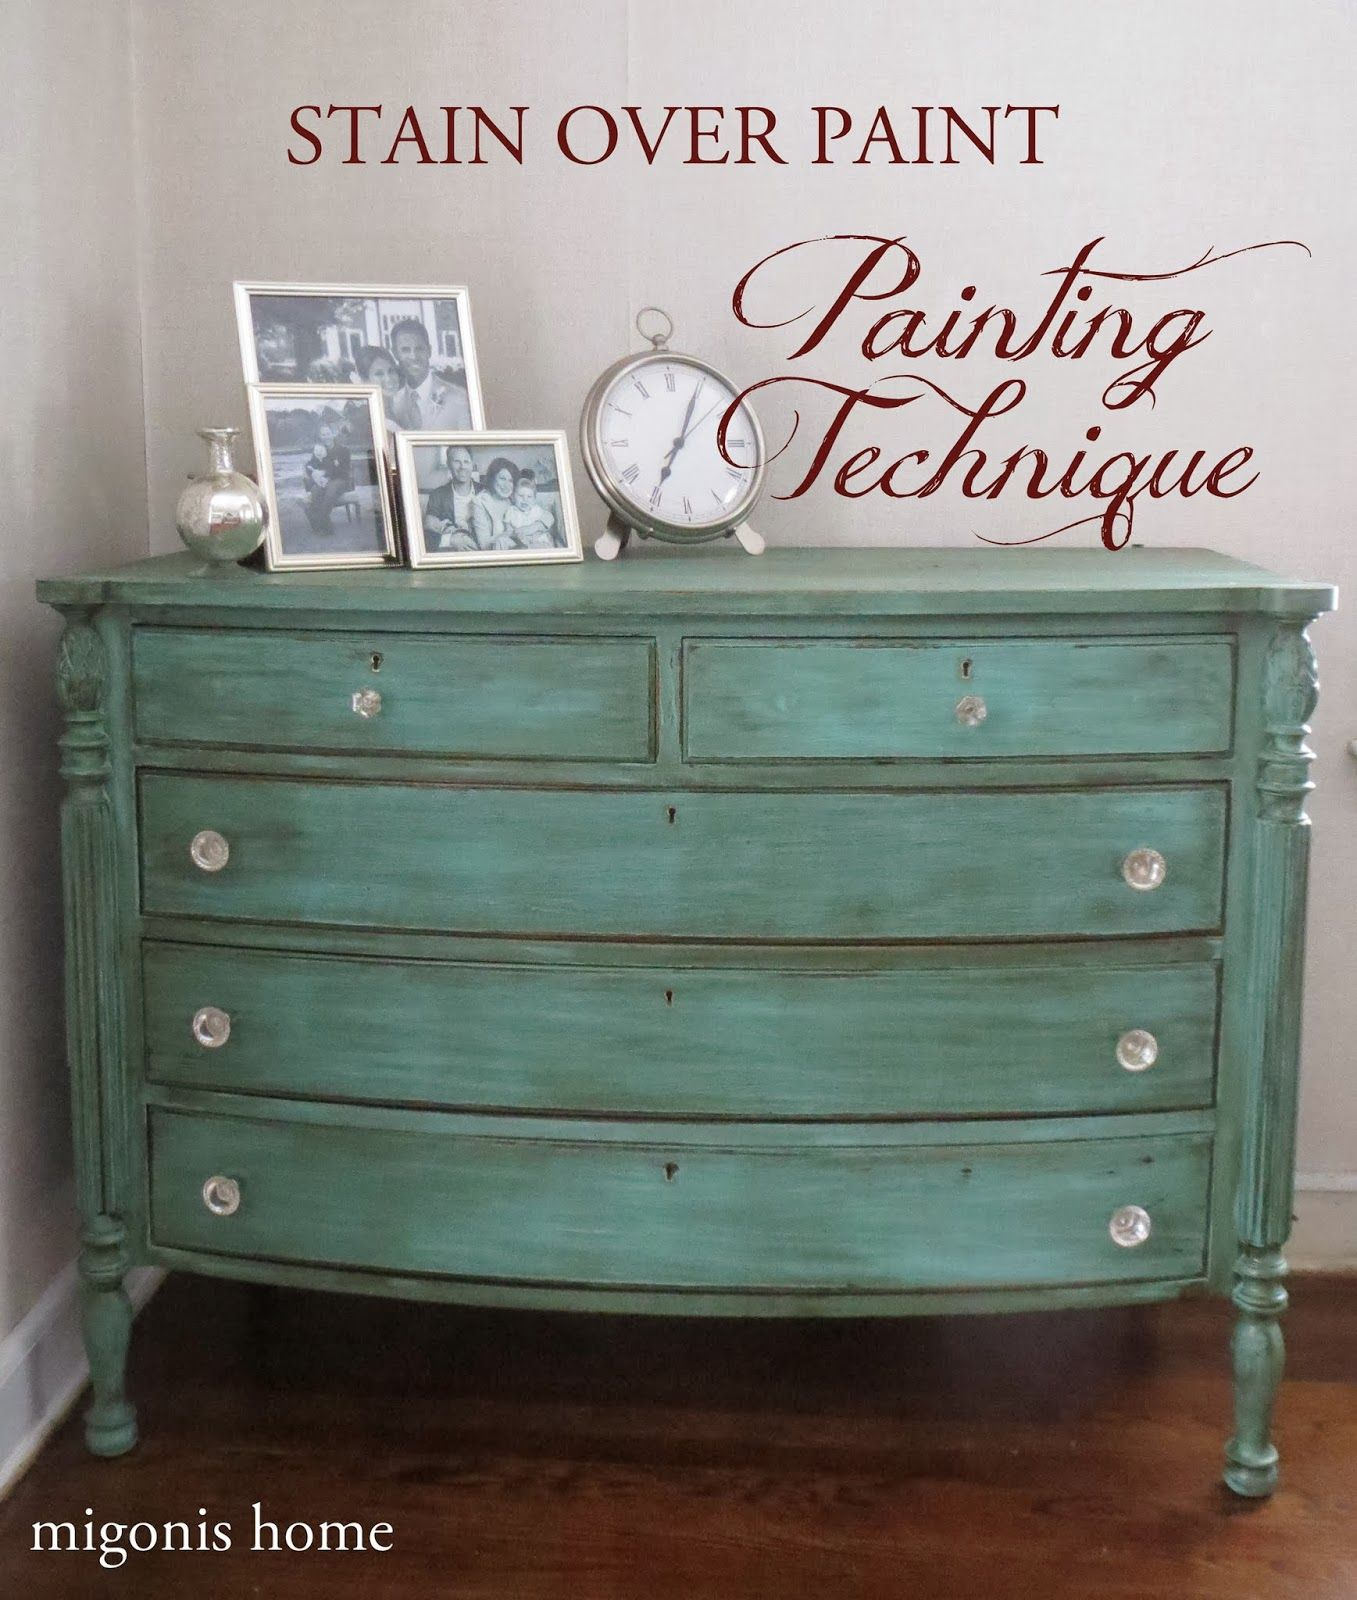 Stain Over Paint Technique Migonis Home #